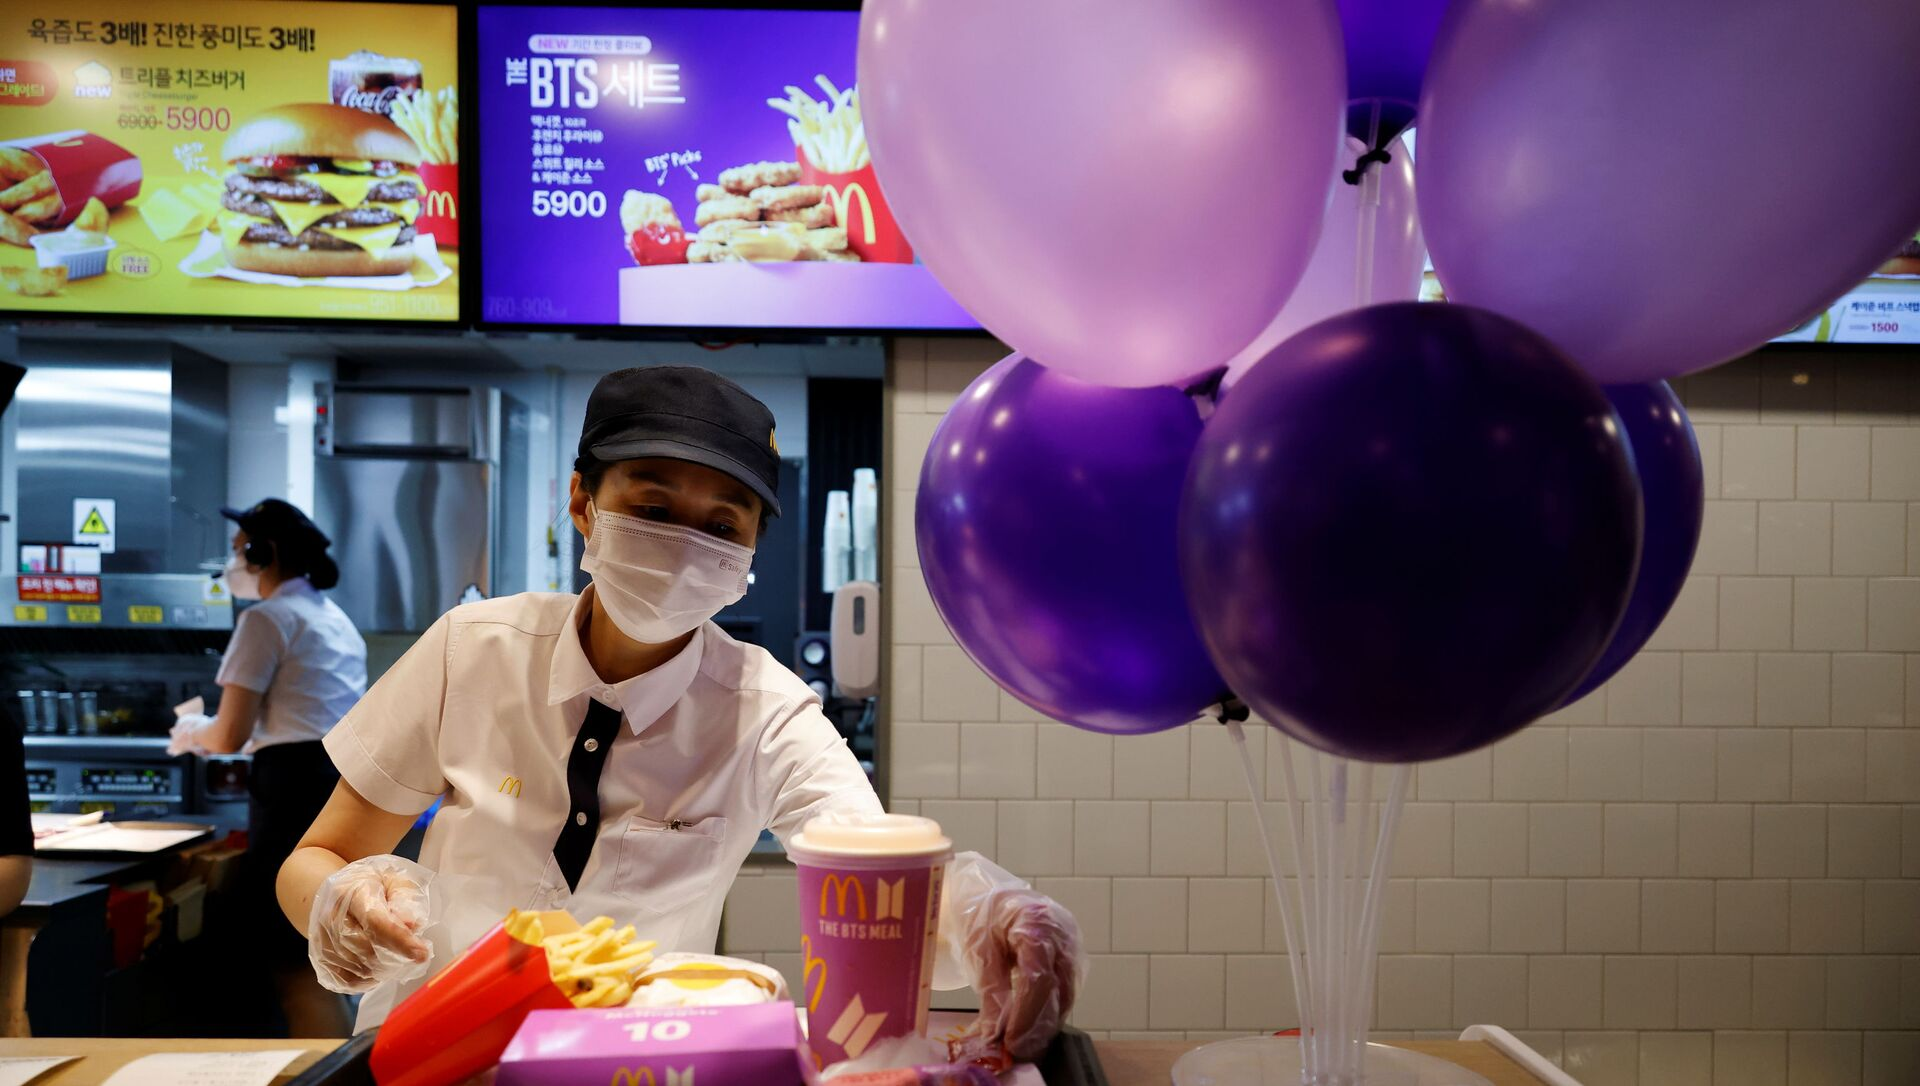 An employee of McDonald's serves a BTS meal, which is inspired and promoted by K-pop boy band BTS, during lunch hour at its restaurant in Seoul, South Korea, May 27, 2021 - Sputnik International, 1920, 28.07.2021